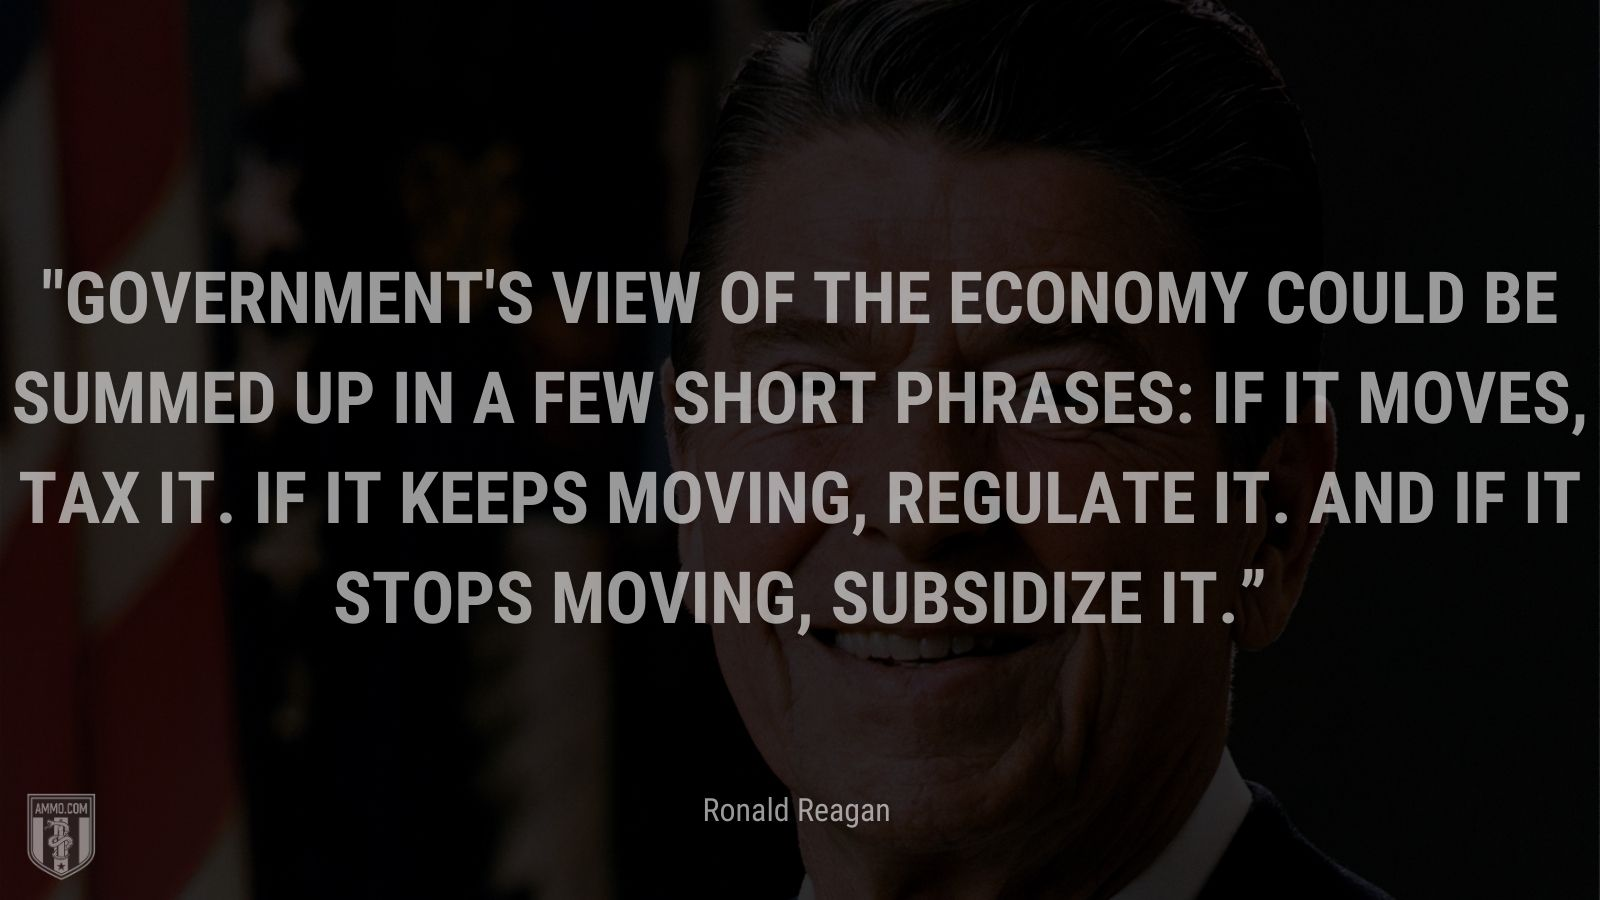 """""""Government's view of the economy could be summed up in a few short phrases: If it moves, tax it. If it keeps moving, regulate it. And if it stops moving, subsidize it."""" - Ronald Reagan"""